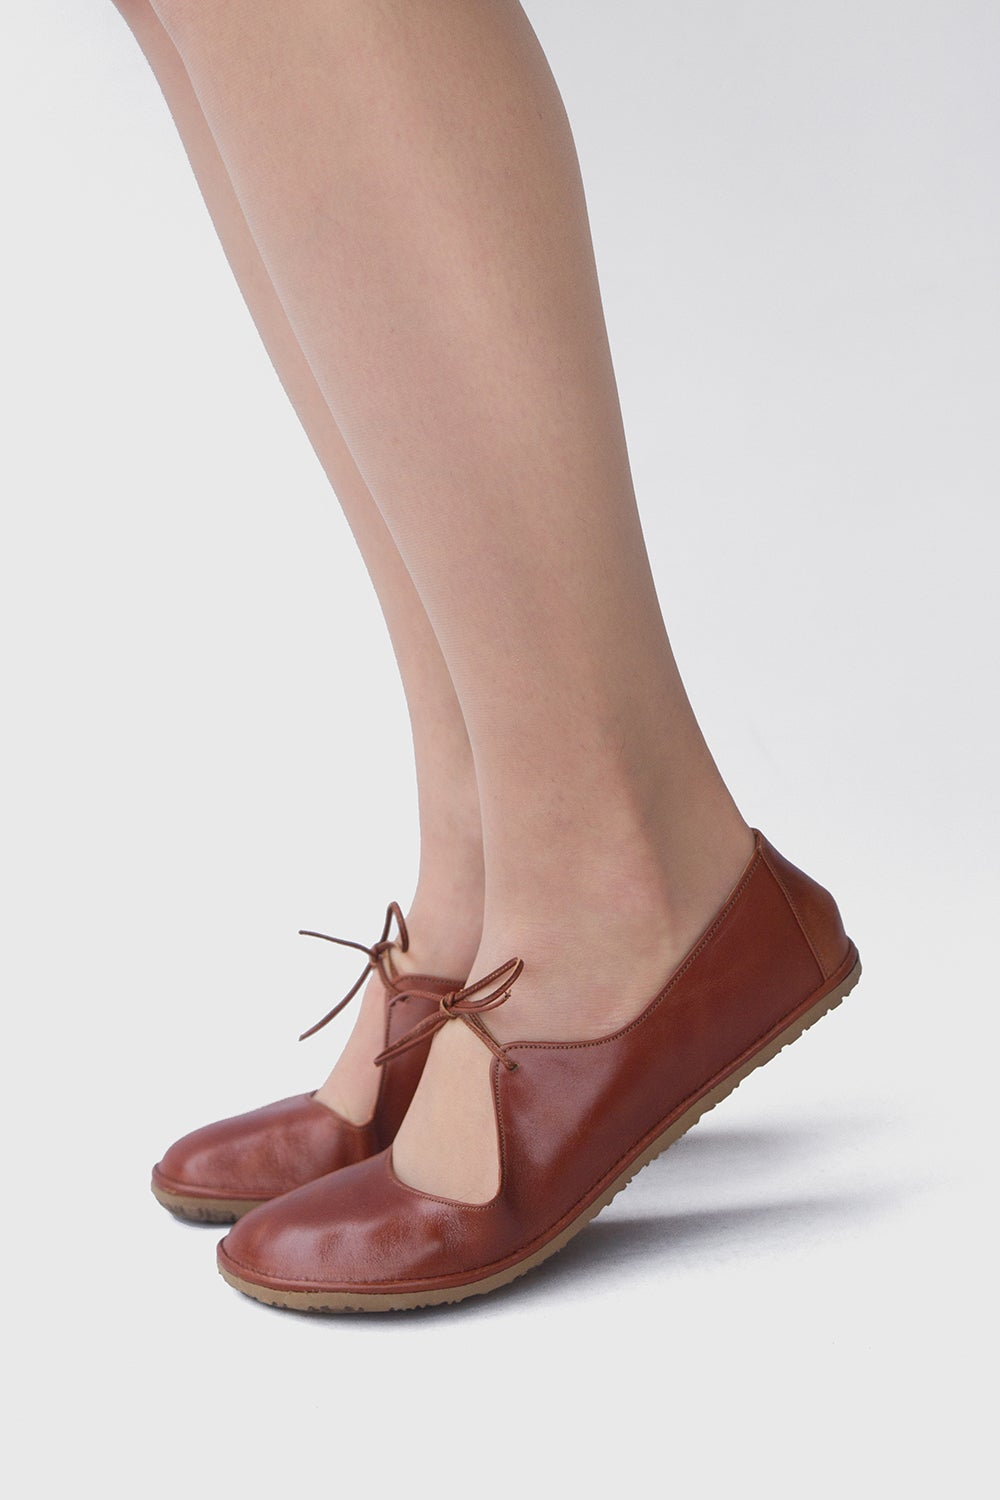 Image of Passion ballet flats in Warm Brown